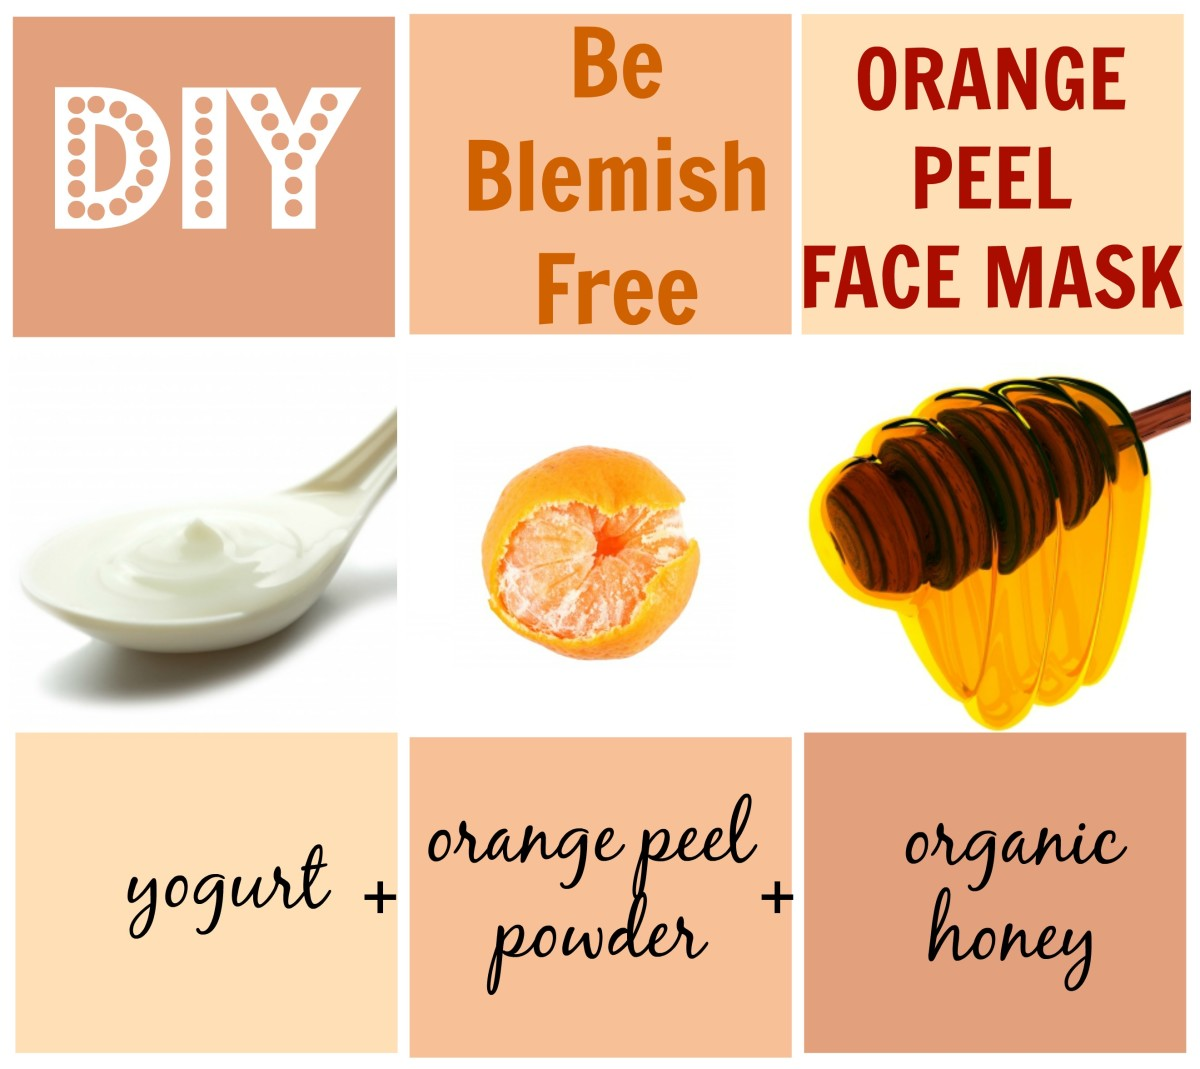 Get rid of blemishes with the Be-Blemish-Free Orange Peel Face Mask, which reduces the visibility of blemishes and evens out skin tone.